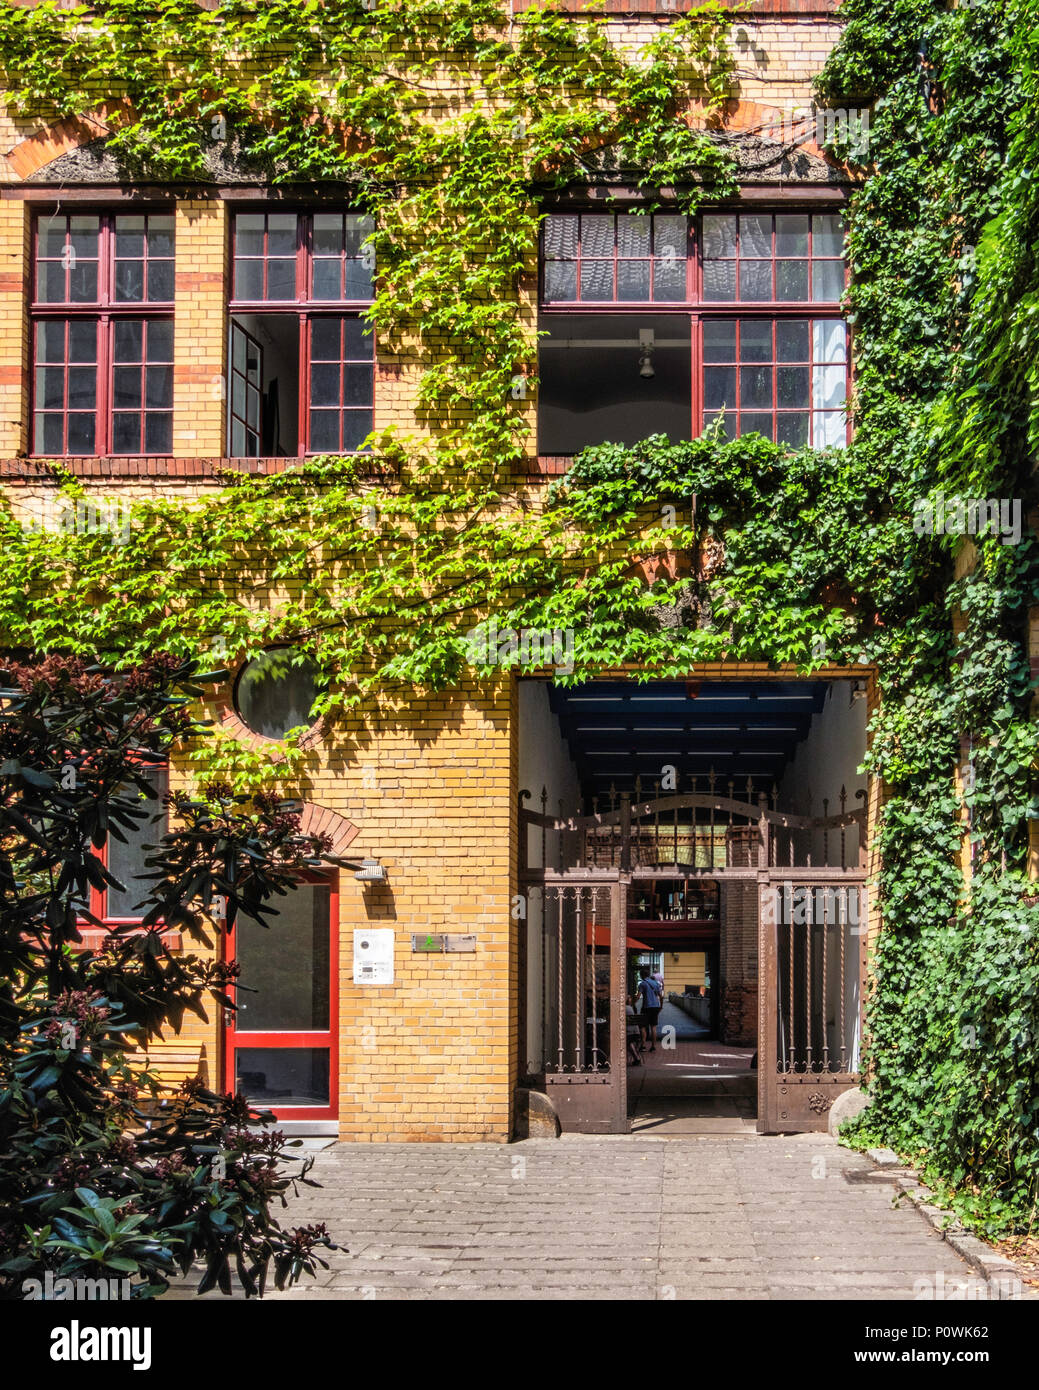 Berlin, Mitte Sophie-Gips-Höfe,Inner couryard, metal gates and ivy covered brick buiding of Historic 19th century former factory.                      - Stock Image